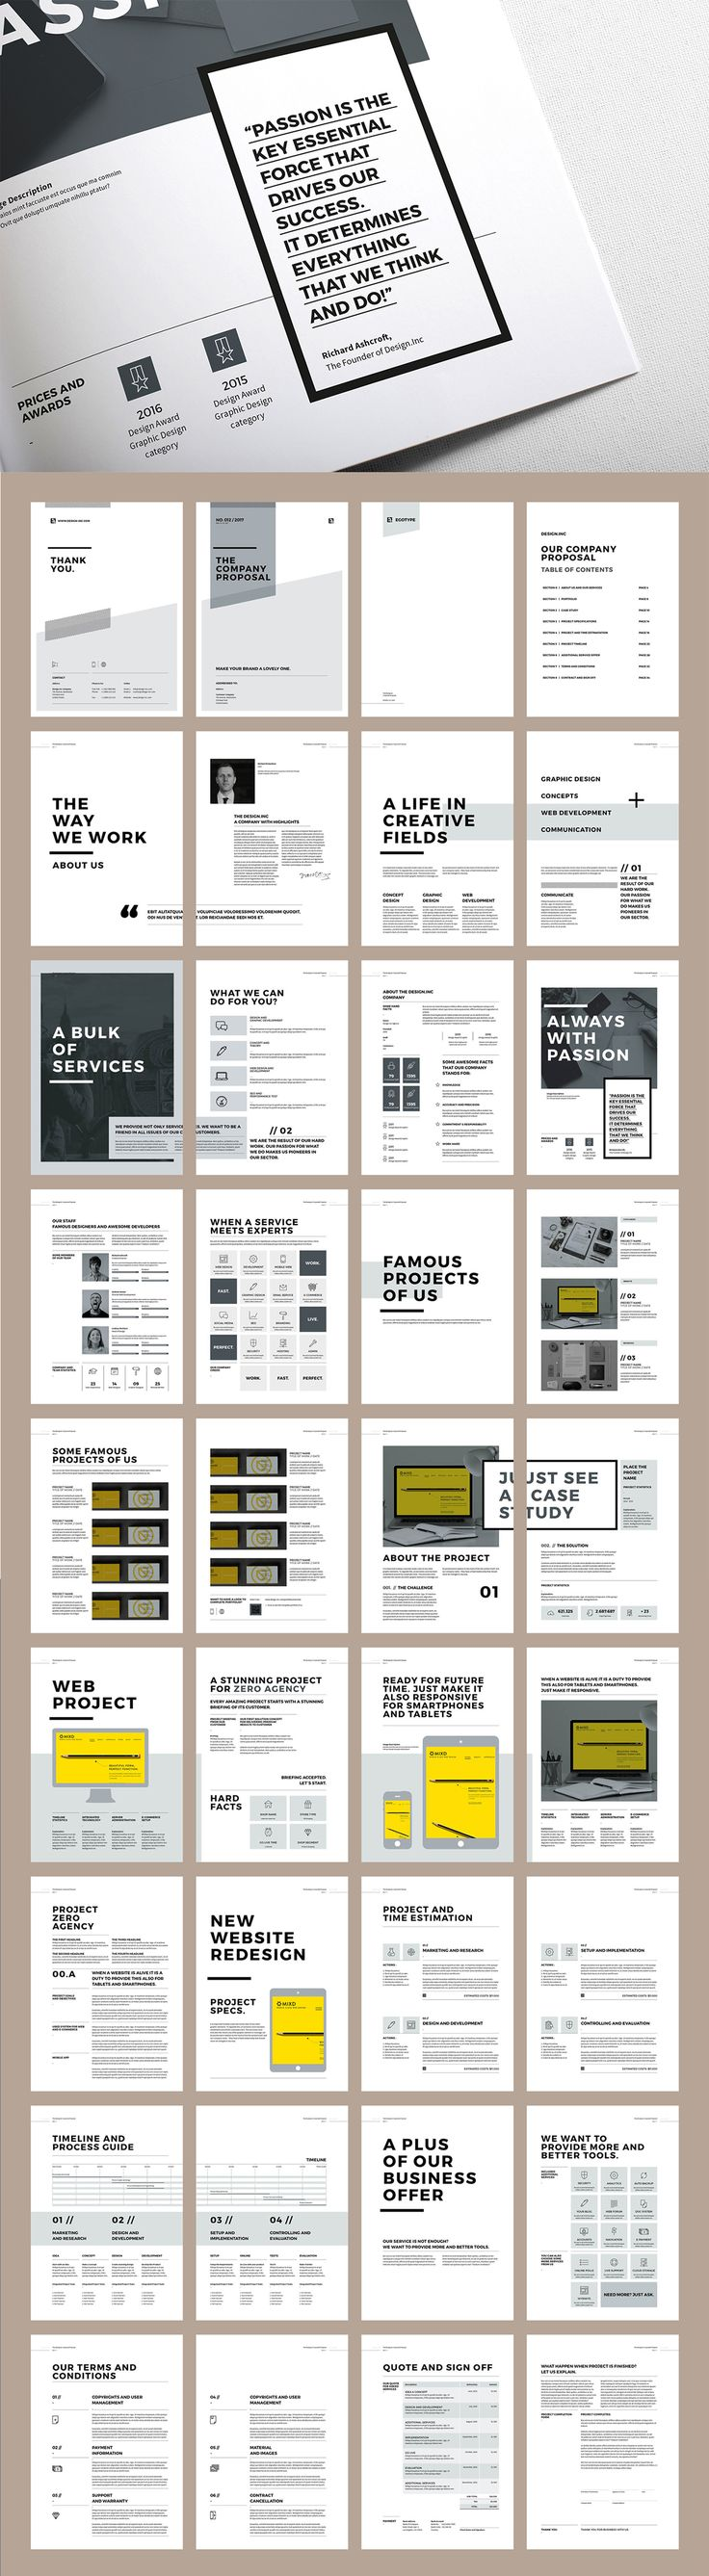 25 unique report design ideas on pinterest report layout proposal and portfolio templateminimal and professional proposal brochure template for creative businesses created in adobe pronofoot35fo Choice Image